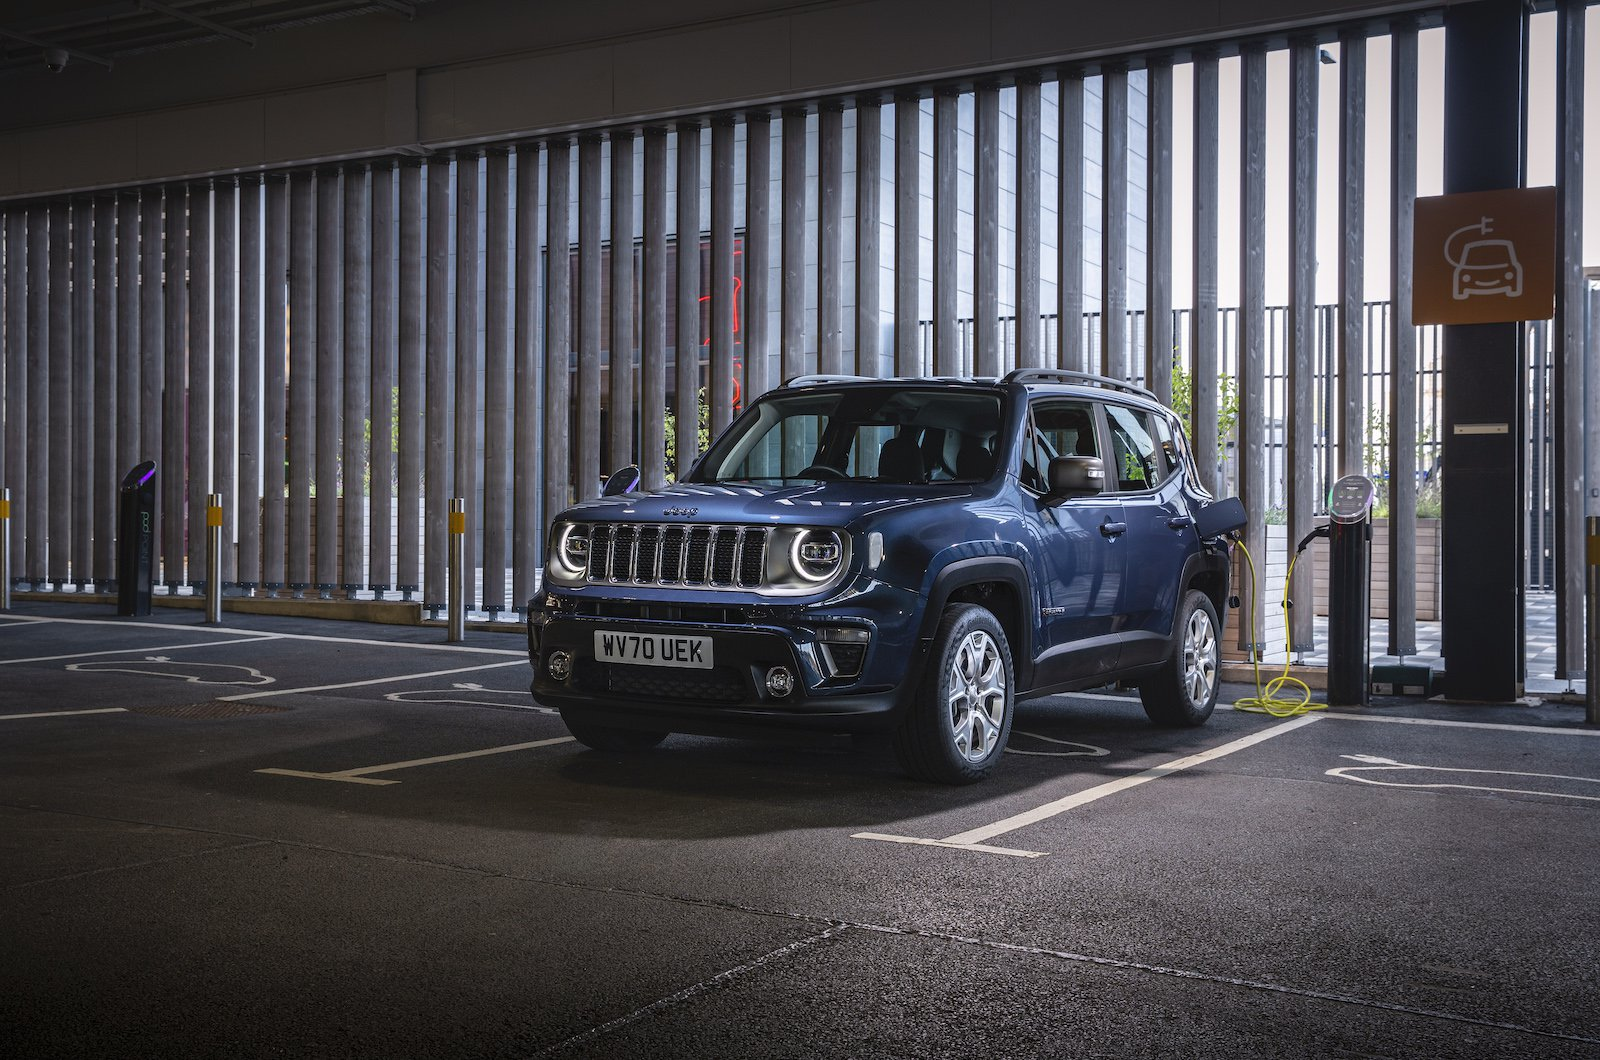 The Jeep Renegade 4xe Plug-in Hybrid has iconic style that stands out and truly astonishing 4x4 capability